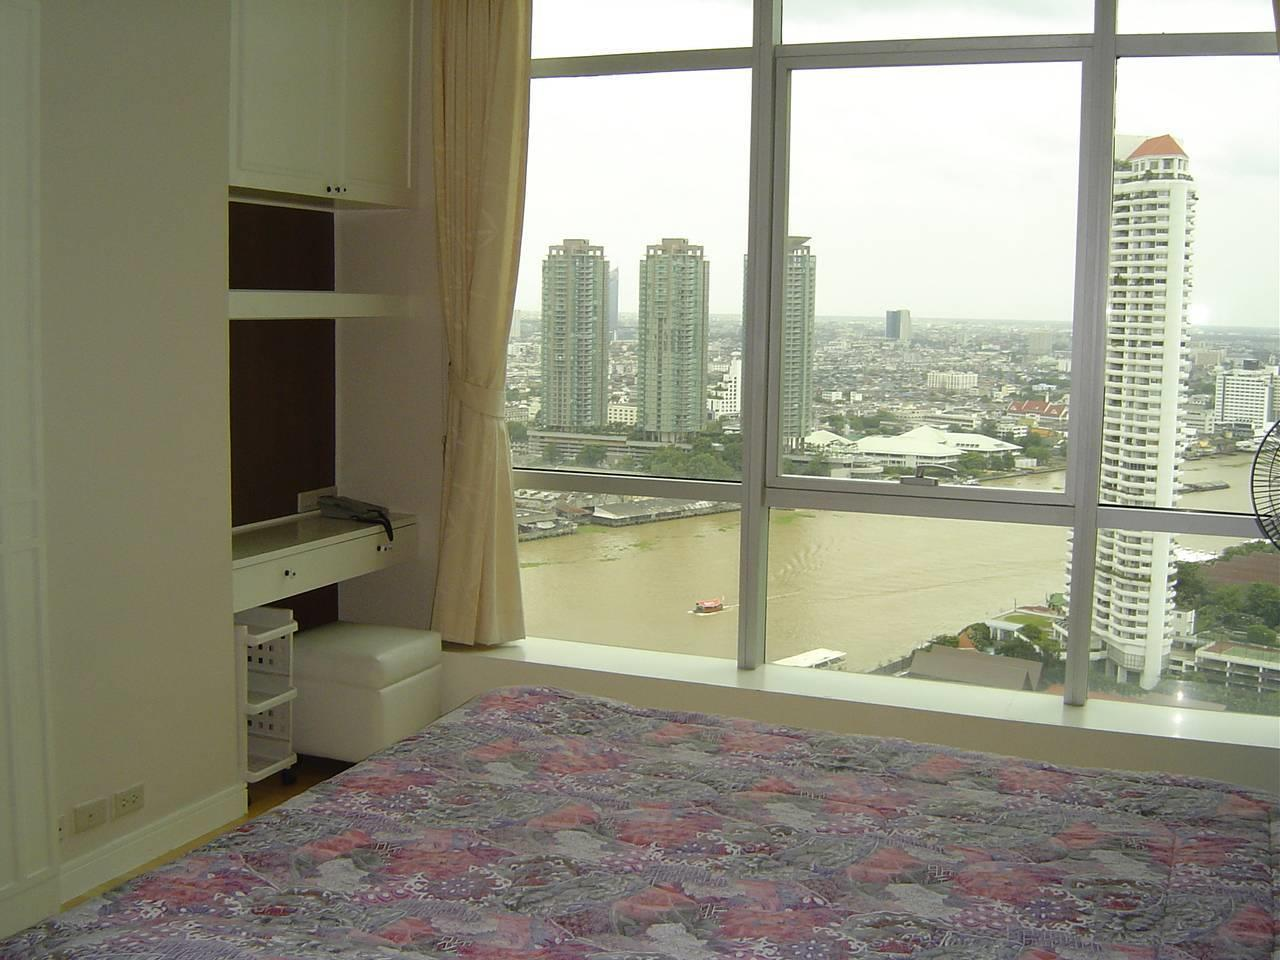 Quality Life Property Agency's For Rent Condo Baan Chao Praya Sathorn 1 Bedroom 1 Bath High Floor Top View 6